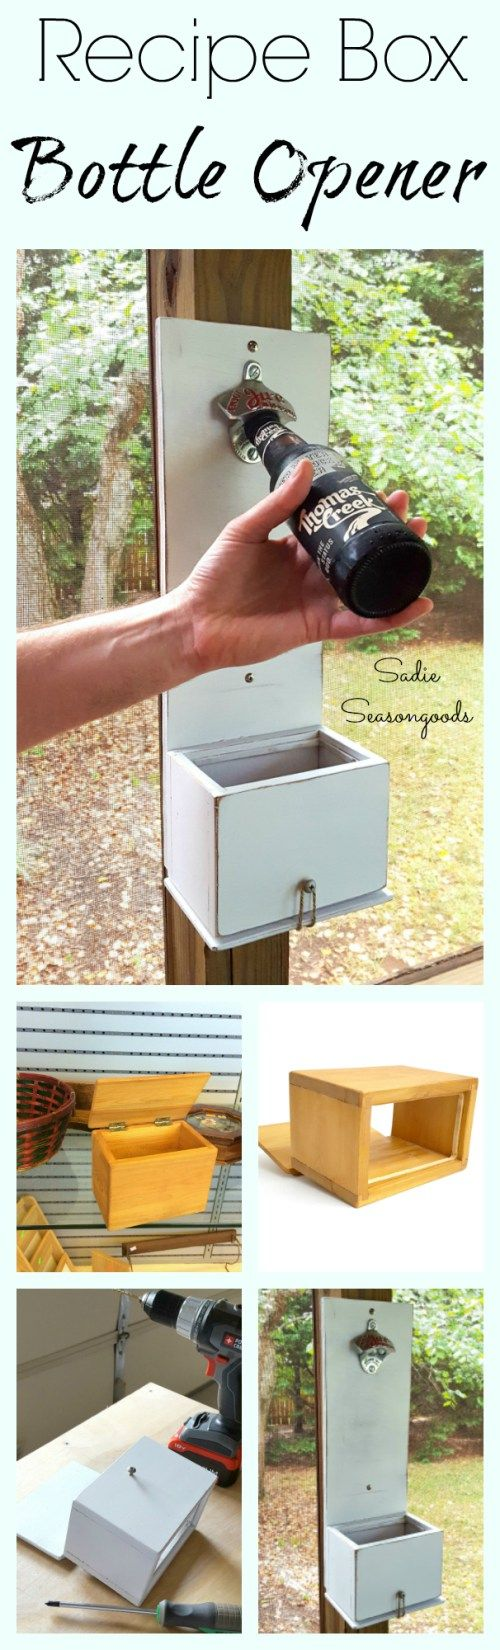 """A wooden recipe box from the thrift store is an ideal """"cap catcher"""" for a DIY bottle opener! Such an easy repurpose project with a genius """"trap door"""" to dispose of the caps. Another fun thrift store DIY makeover and upcycle craft from #SadieSeasongoods / www.sadieseasongoods.com"""